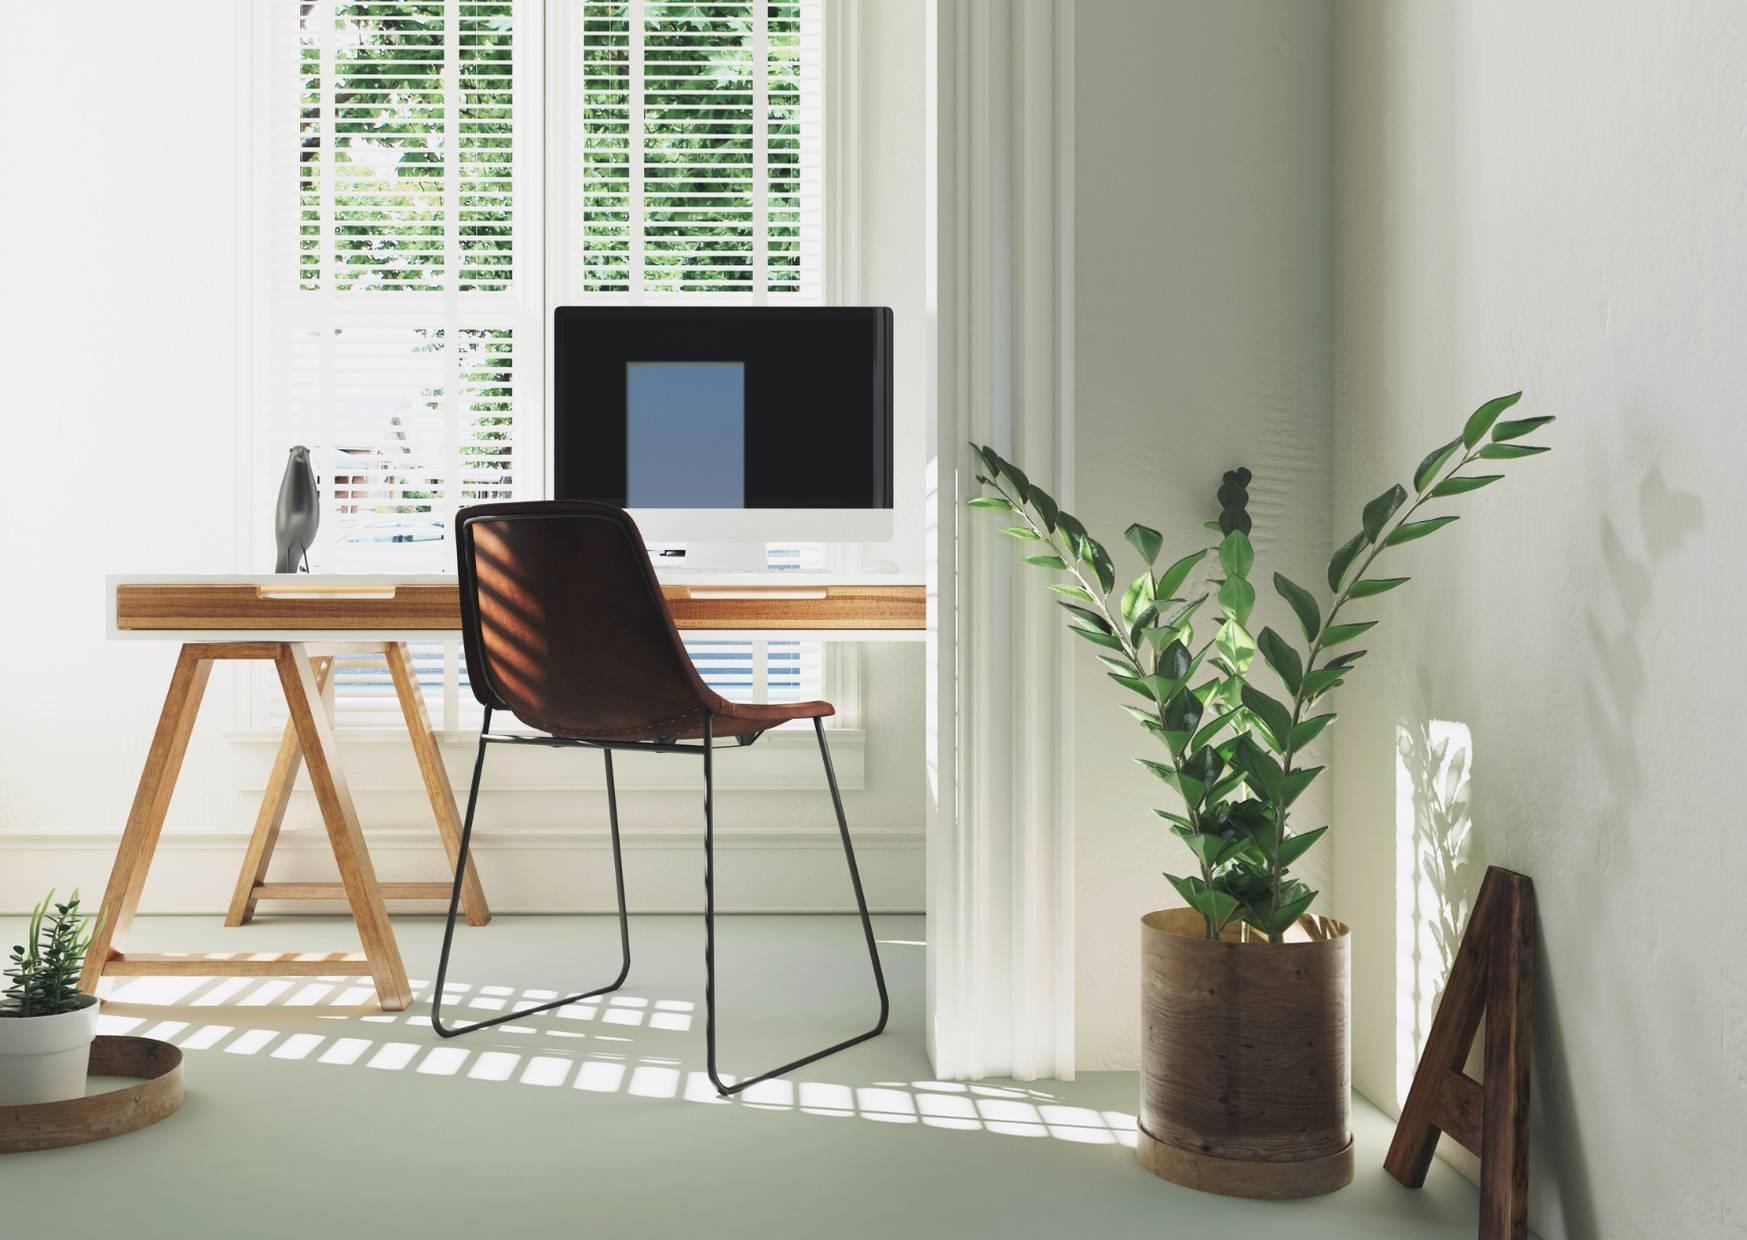 renovating your home office